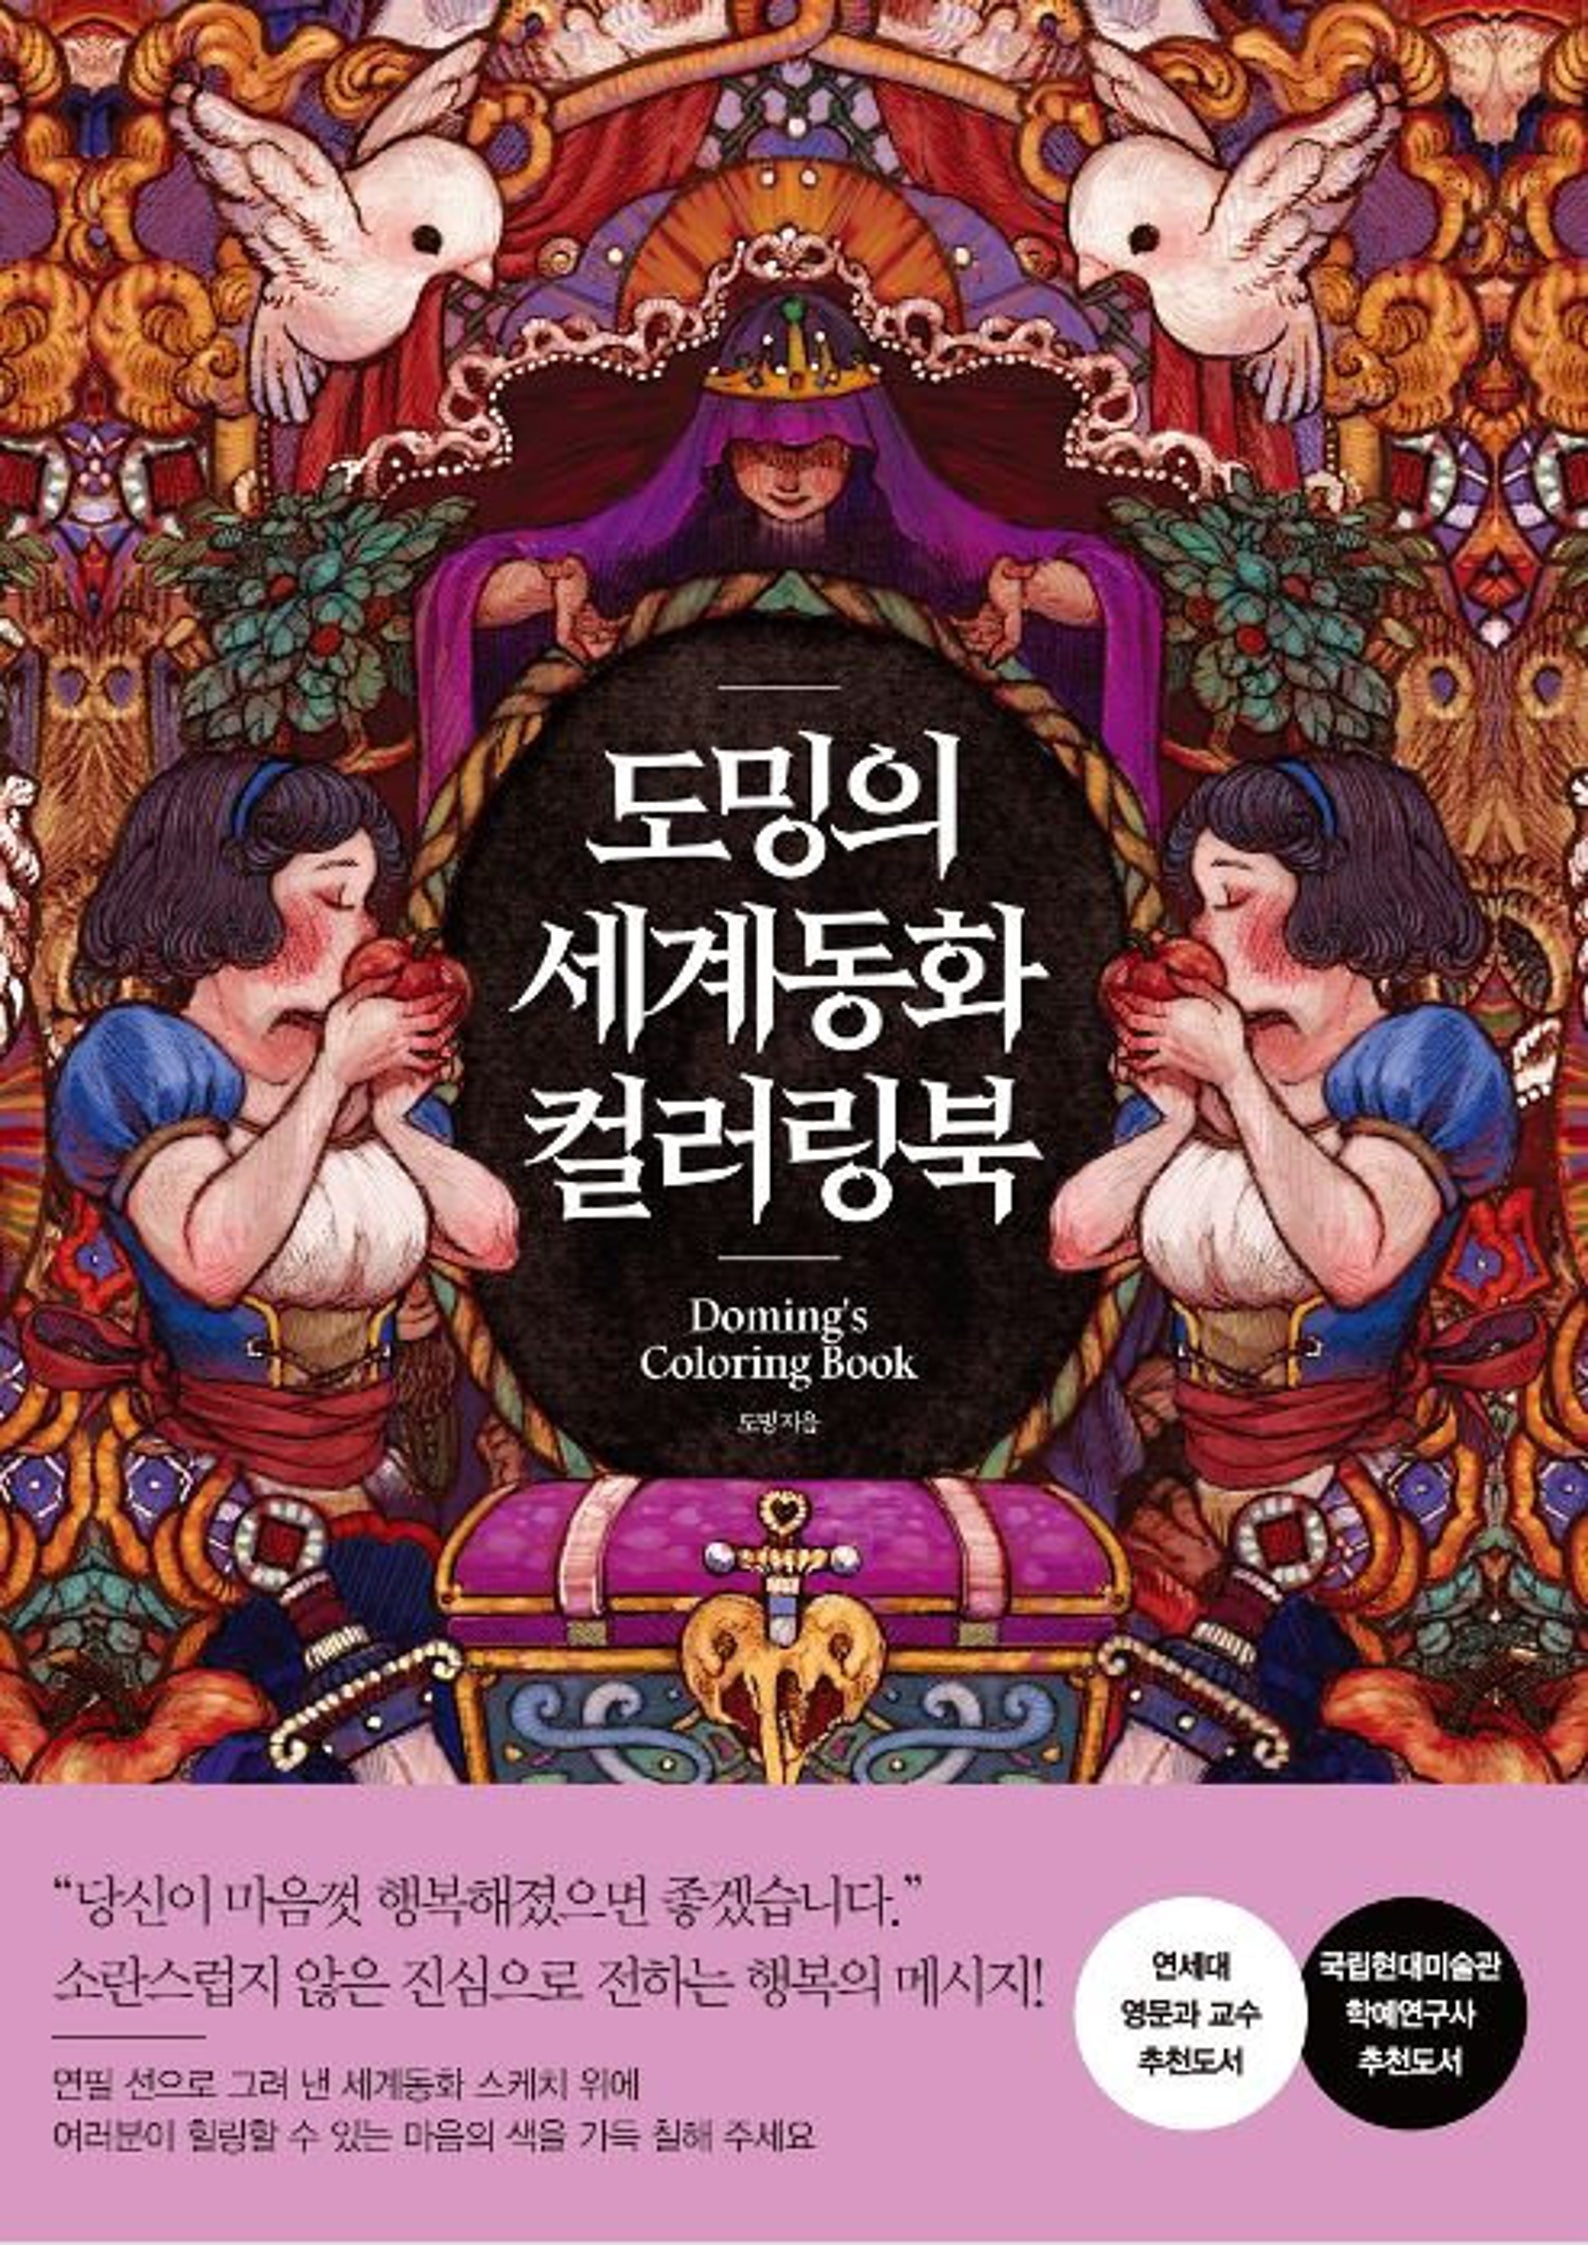 Doming's Coloring Book